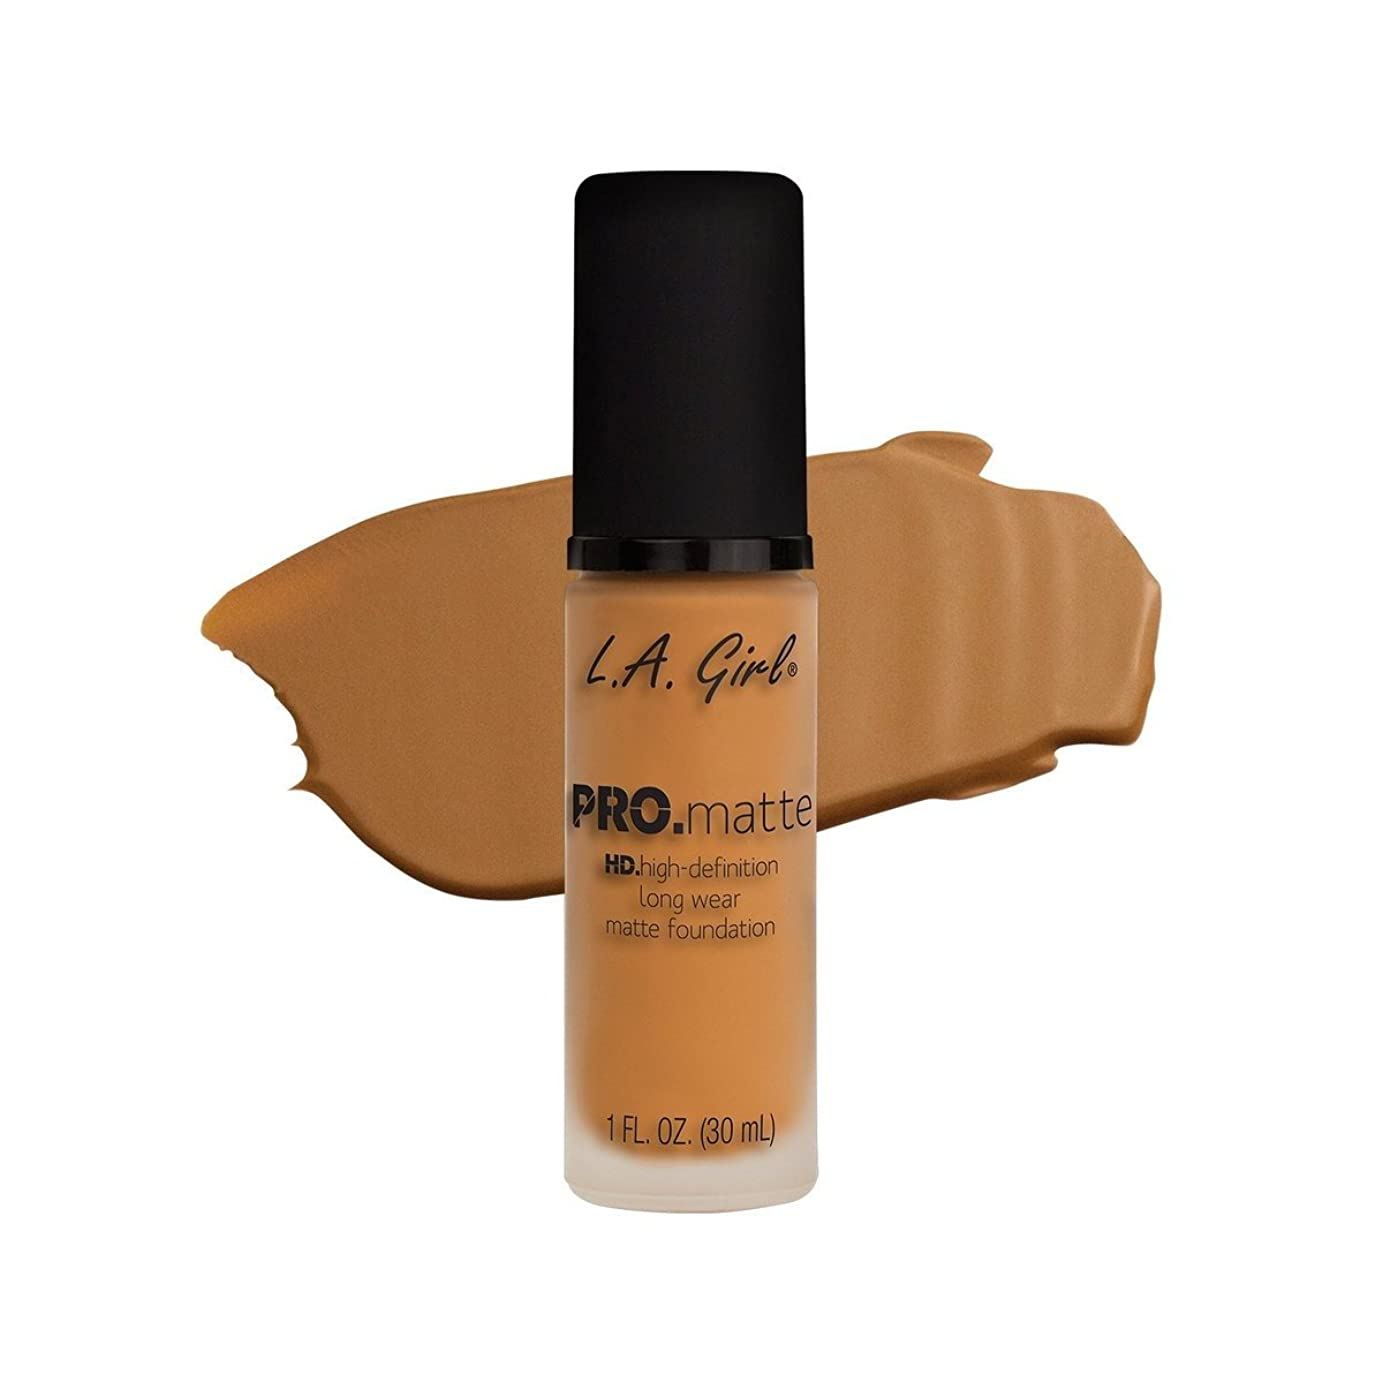 熱狂的な郵便局裏切る(6 Pack) L.A. GIRL Pro Matte Foundation - Golden Bronze (並行輸入品)